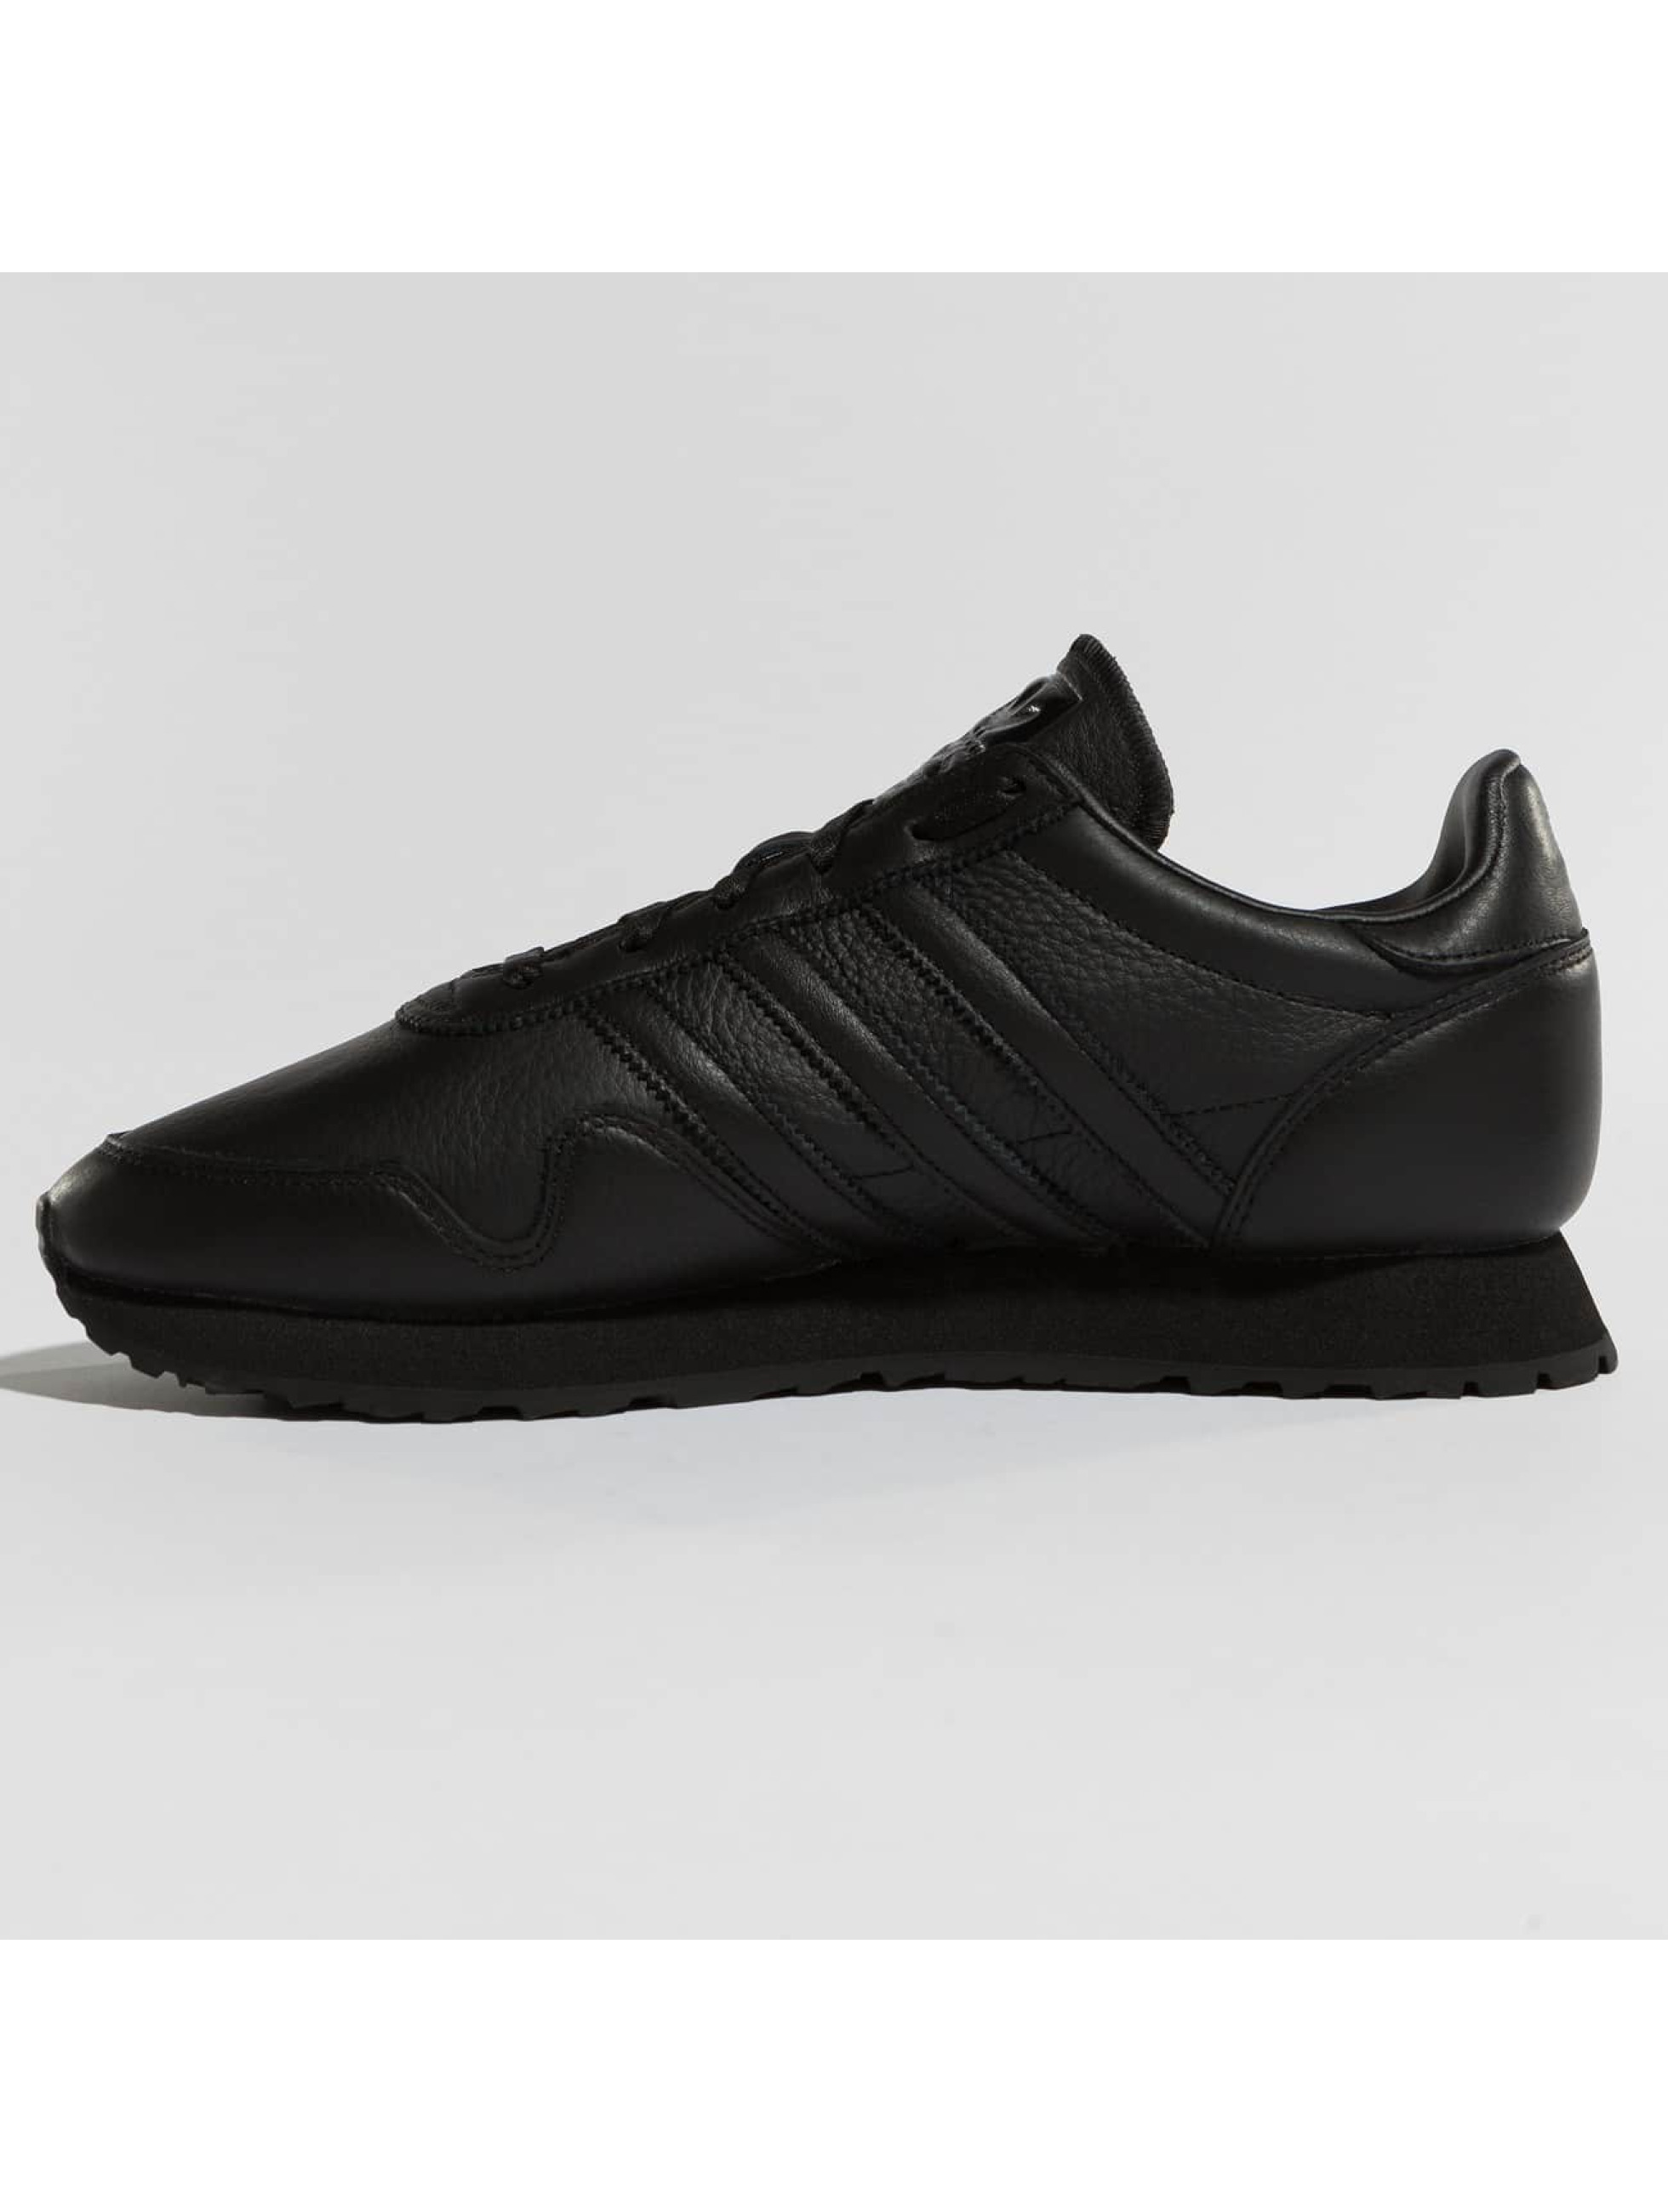 adidas Sneakers Heaven black